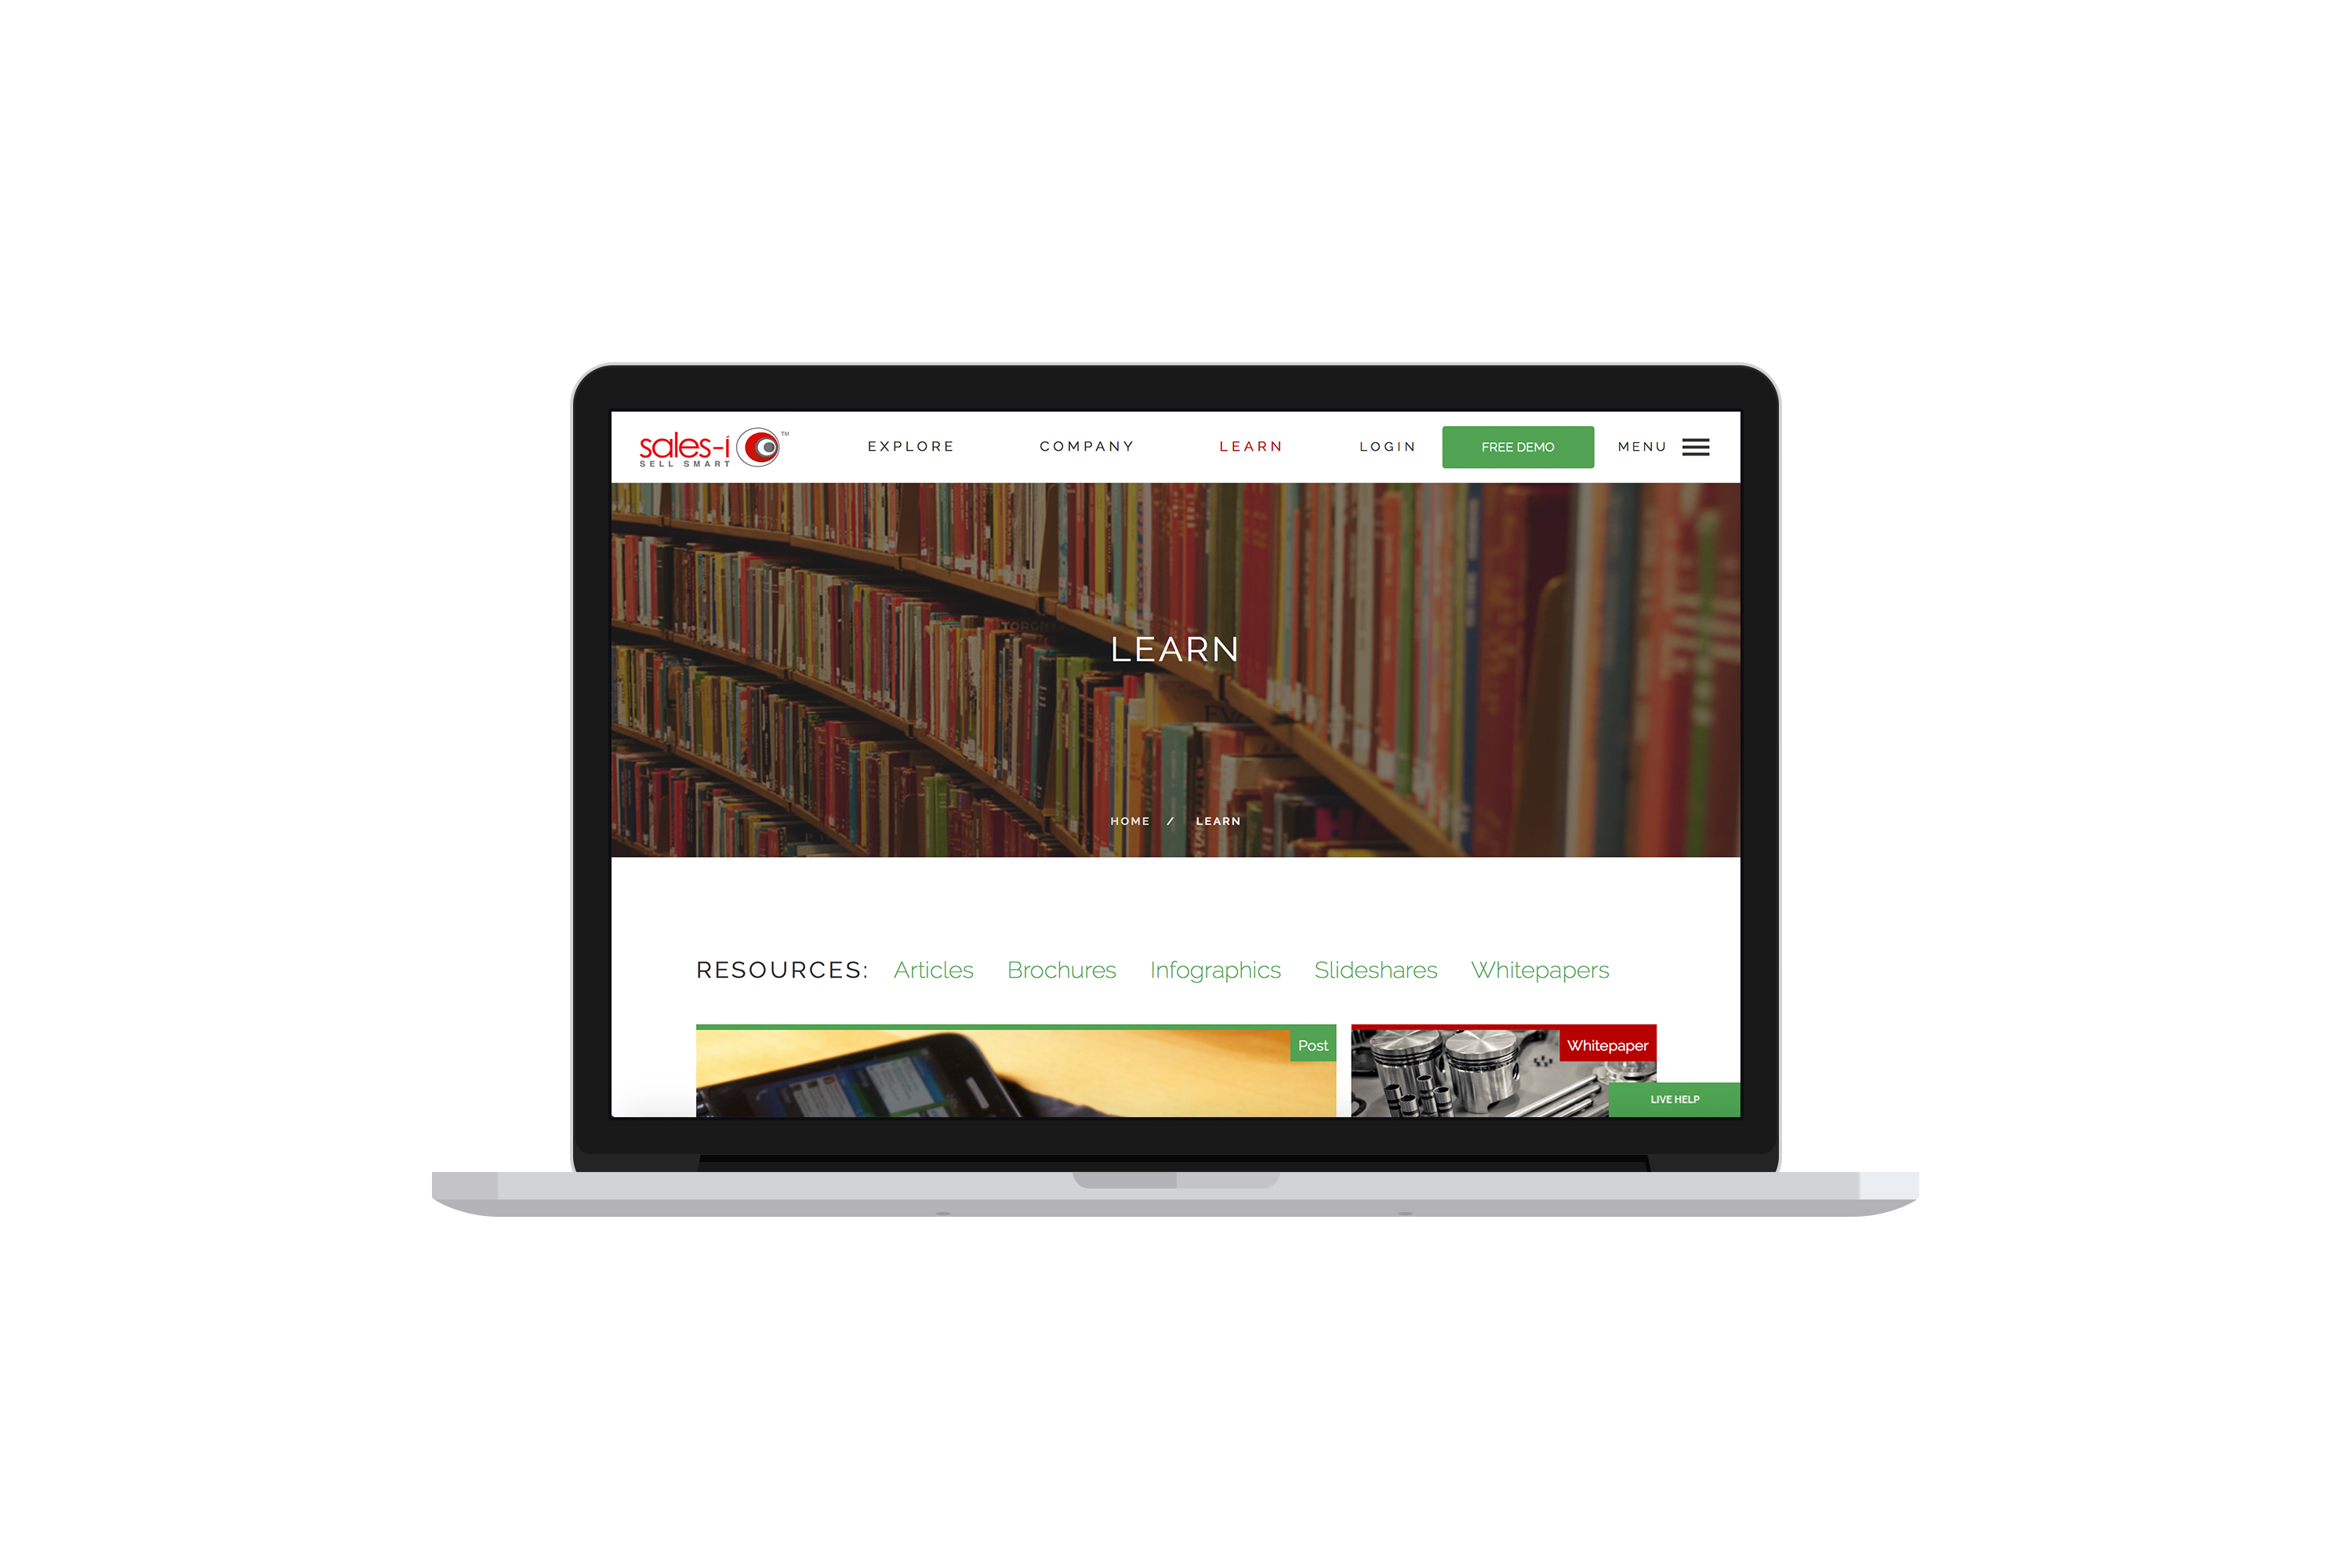 New website learn section